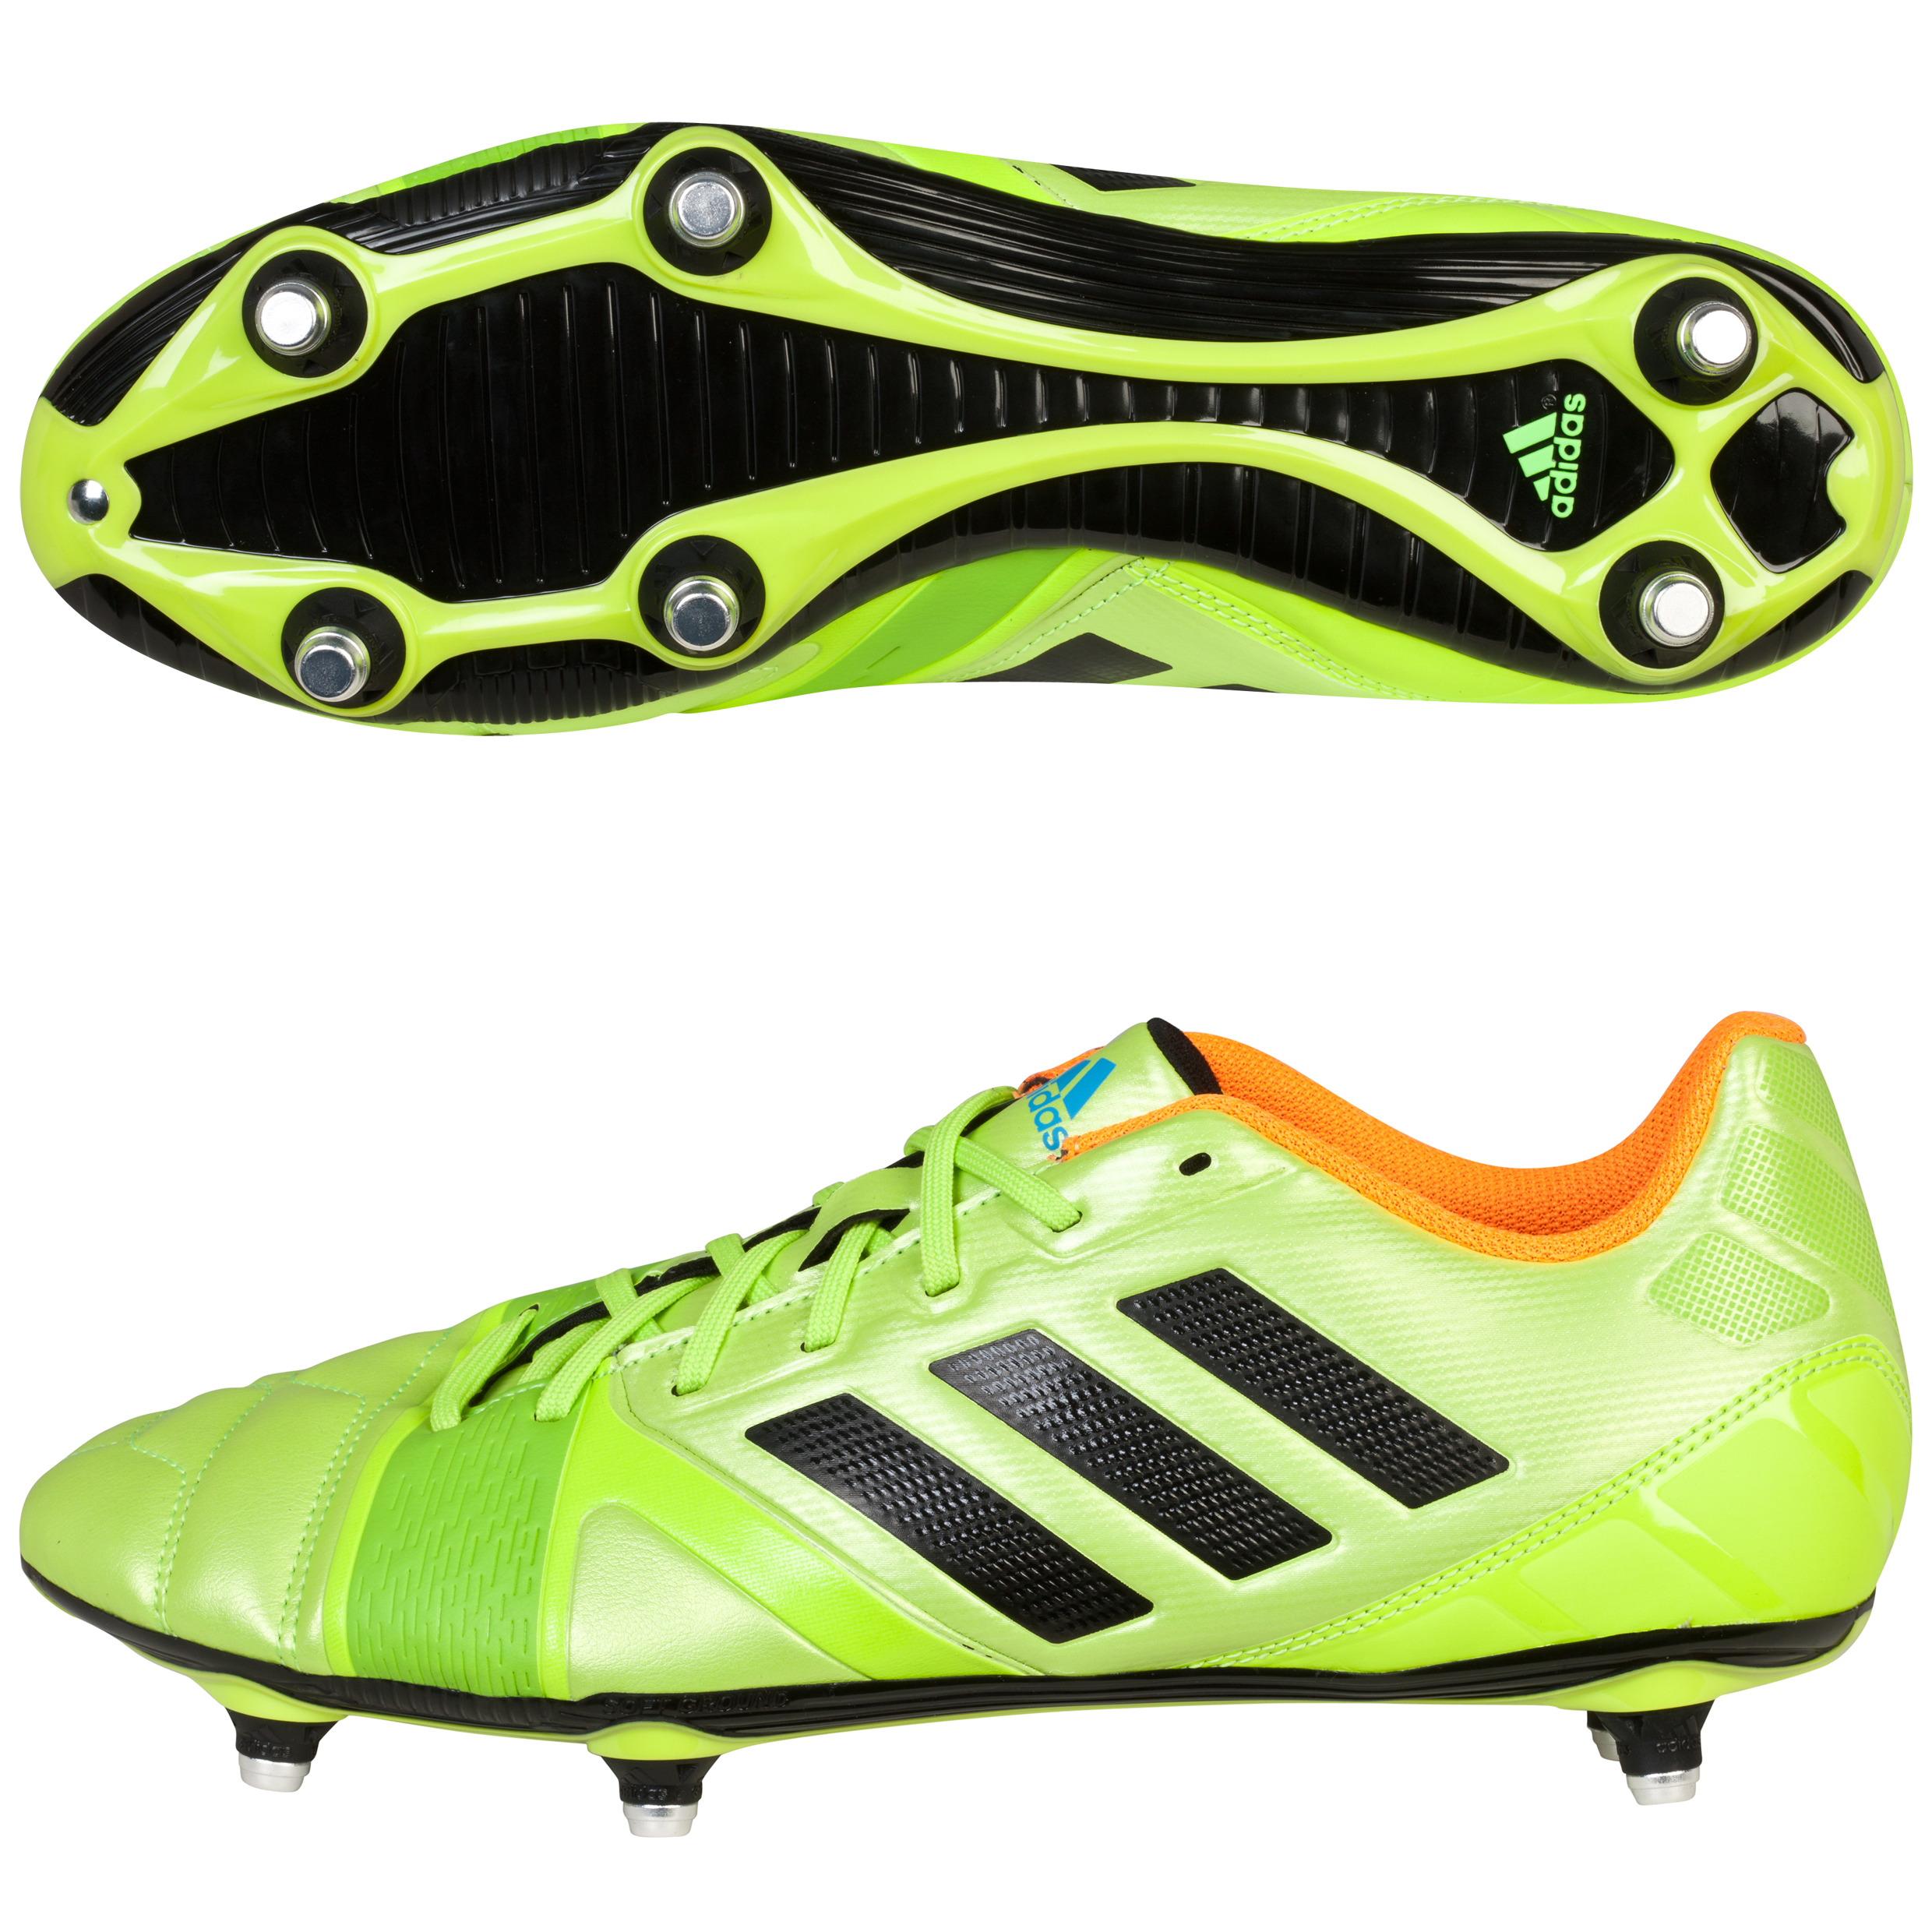 Adidas Nitrocharge 3.0 Soft Ground Football Boots Green